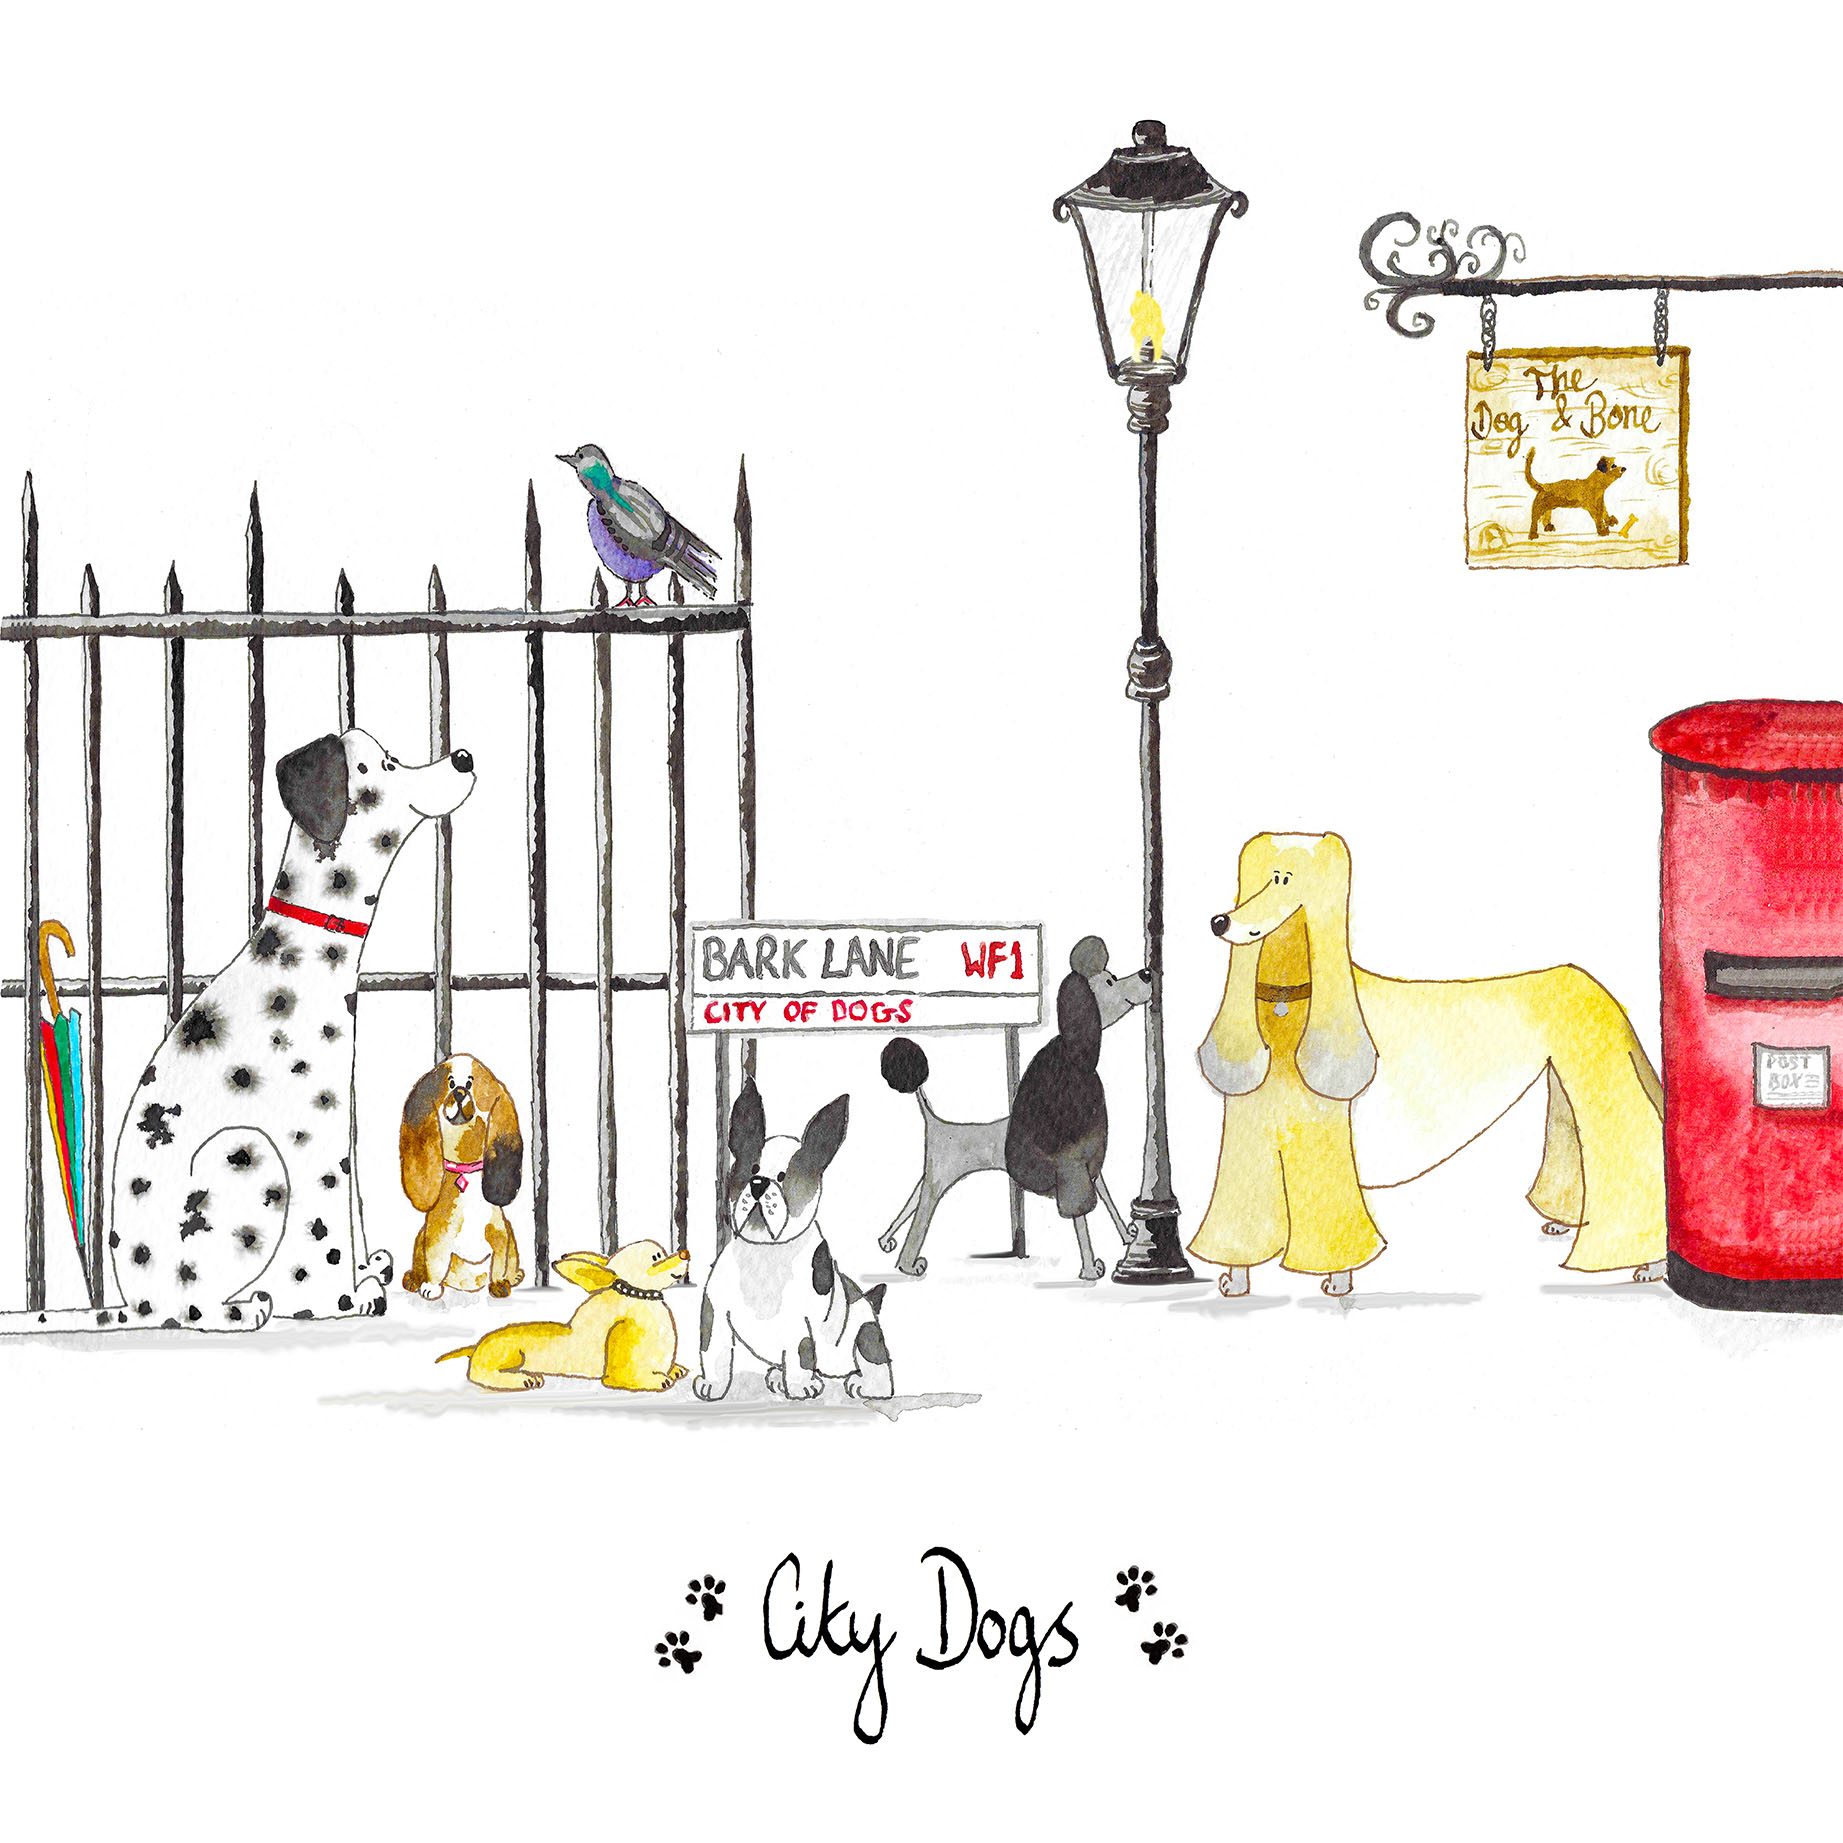 City Dogs Greeting Card